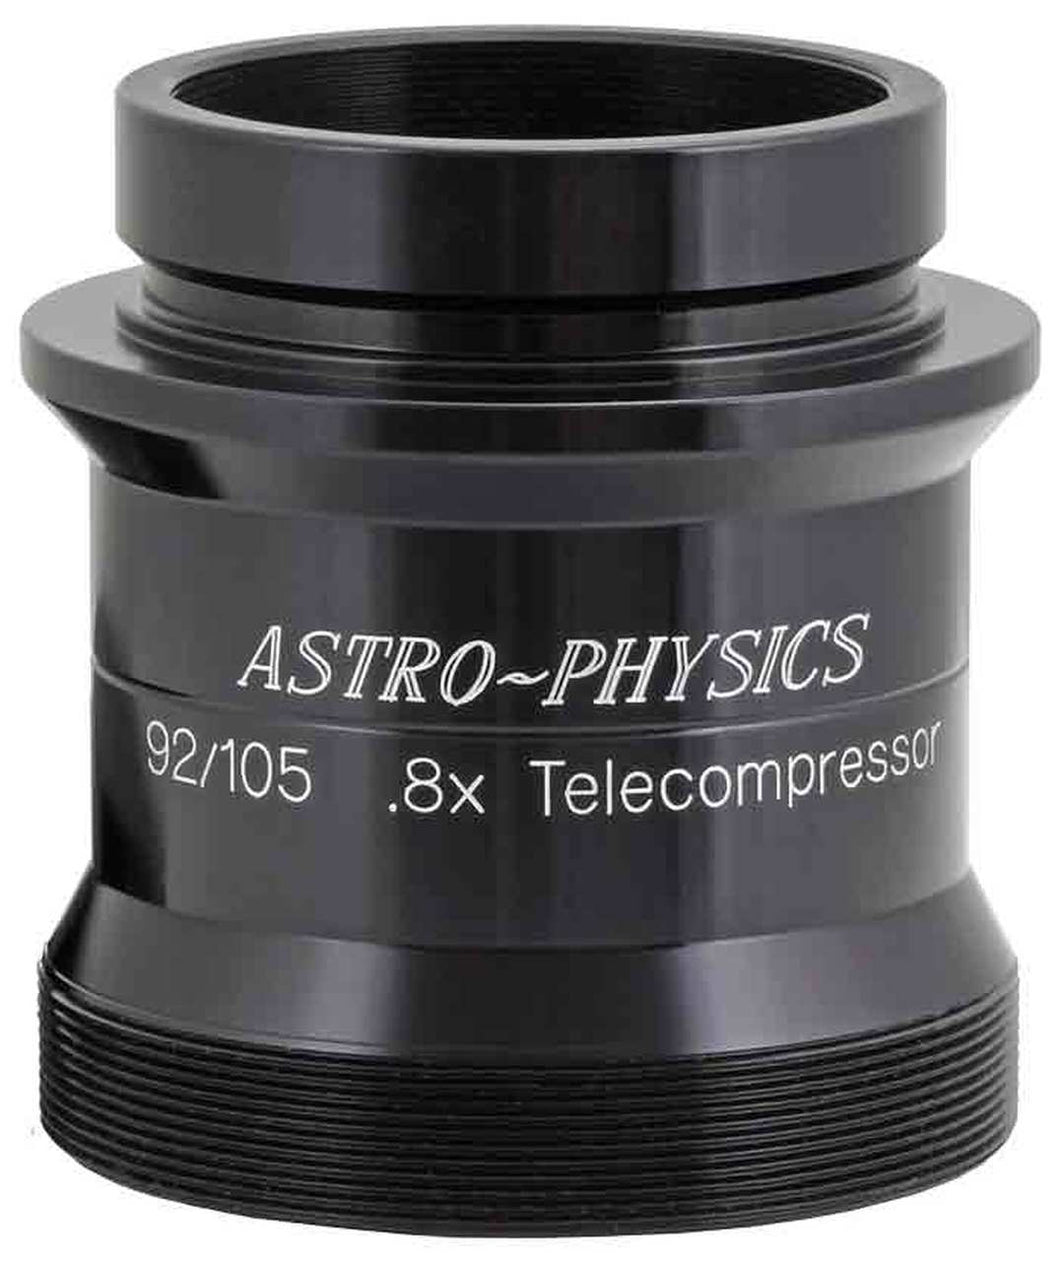 0.8x CCD Telecompressor for 92mm Stowaway and Traveler. Requires 2.5